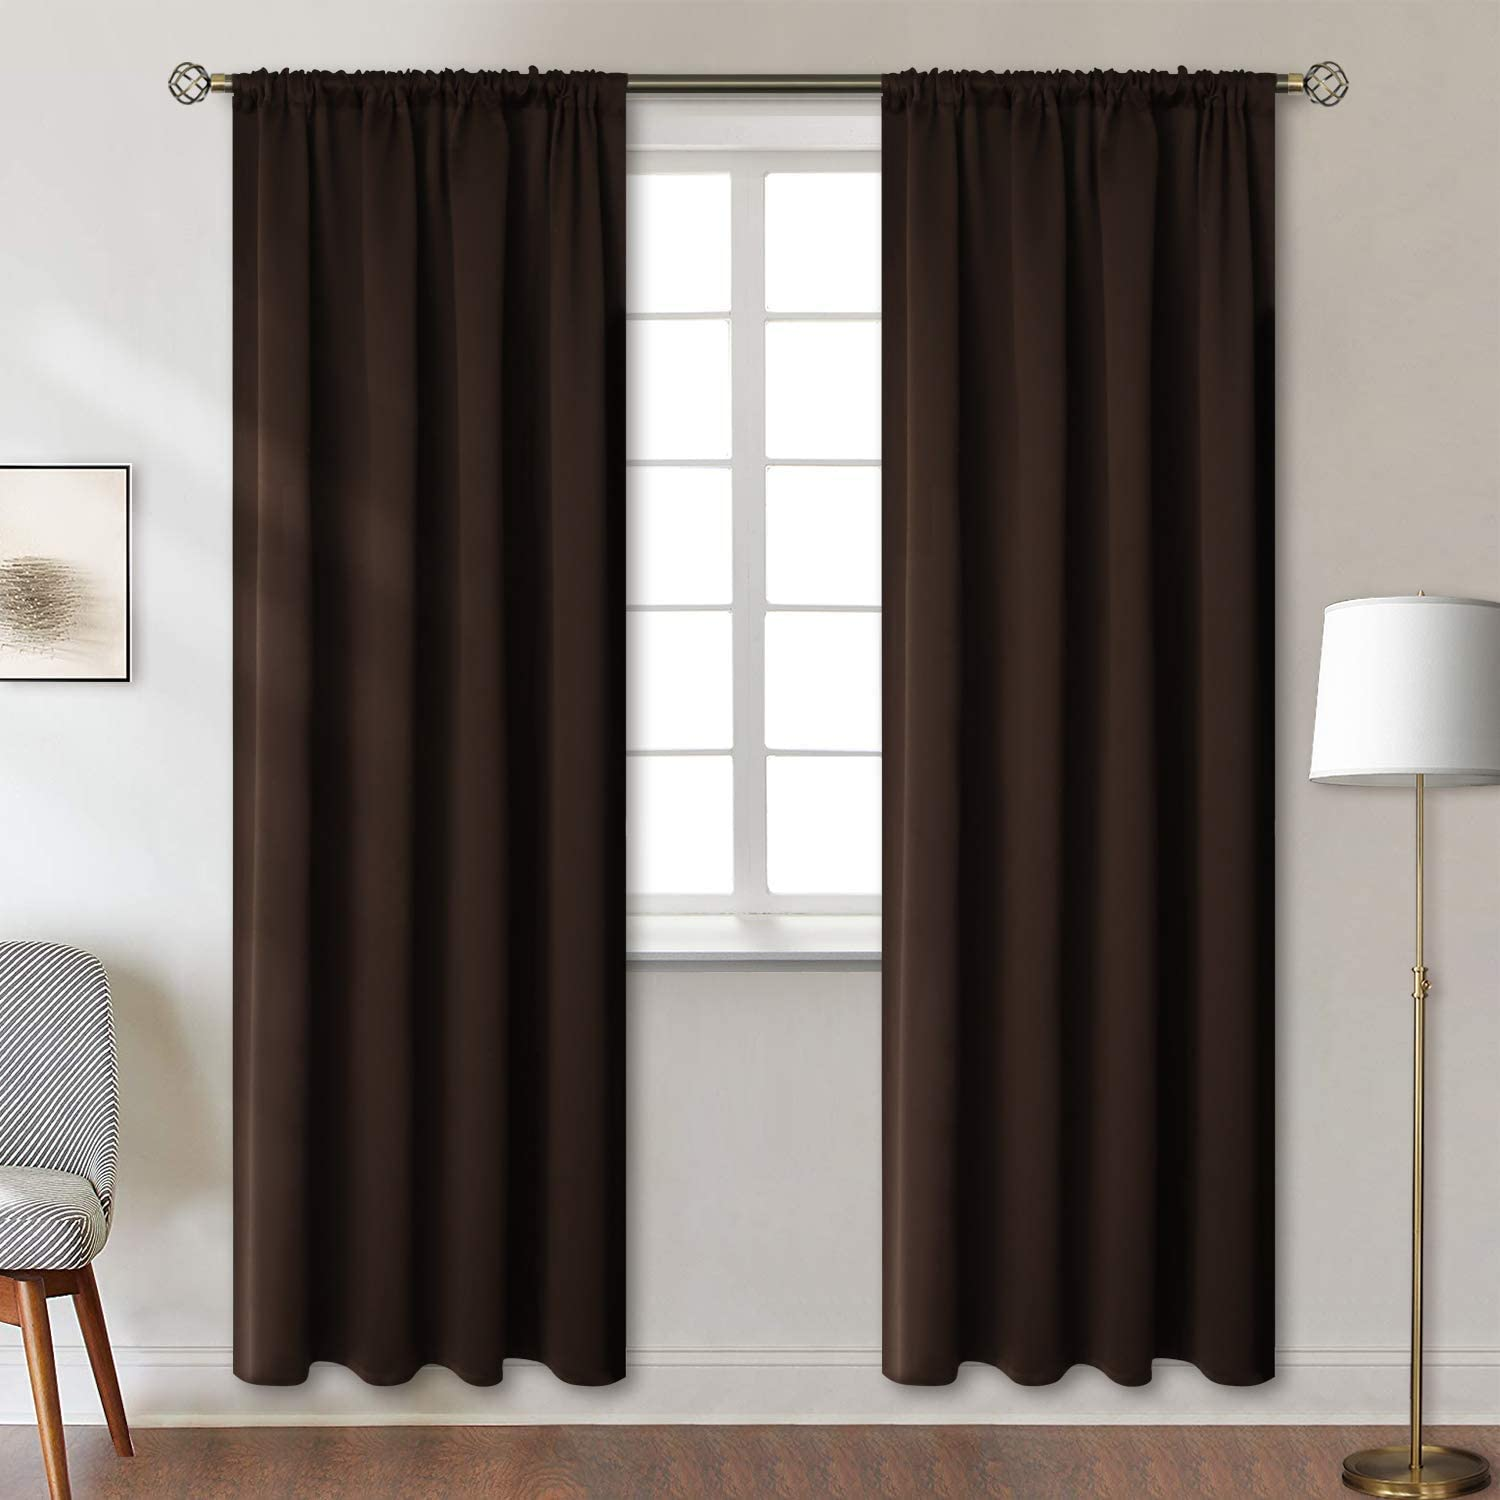 Rod アウトレット☆送料無料 Pocket バースデー 記念日 ギフト 贈物 お勧め 通販 Blackout Curtains for - Roo Bedroom Thermal Insulated